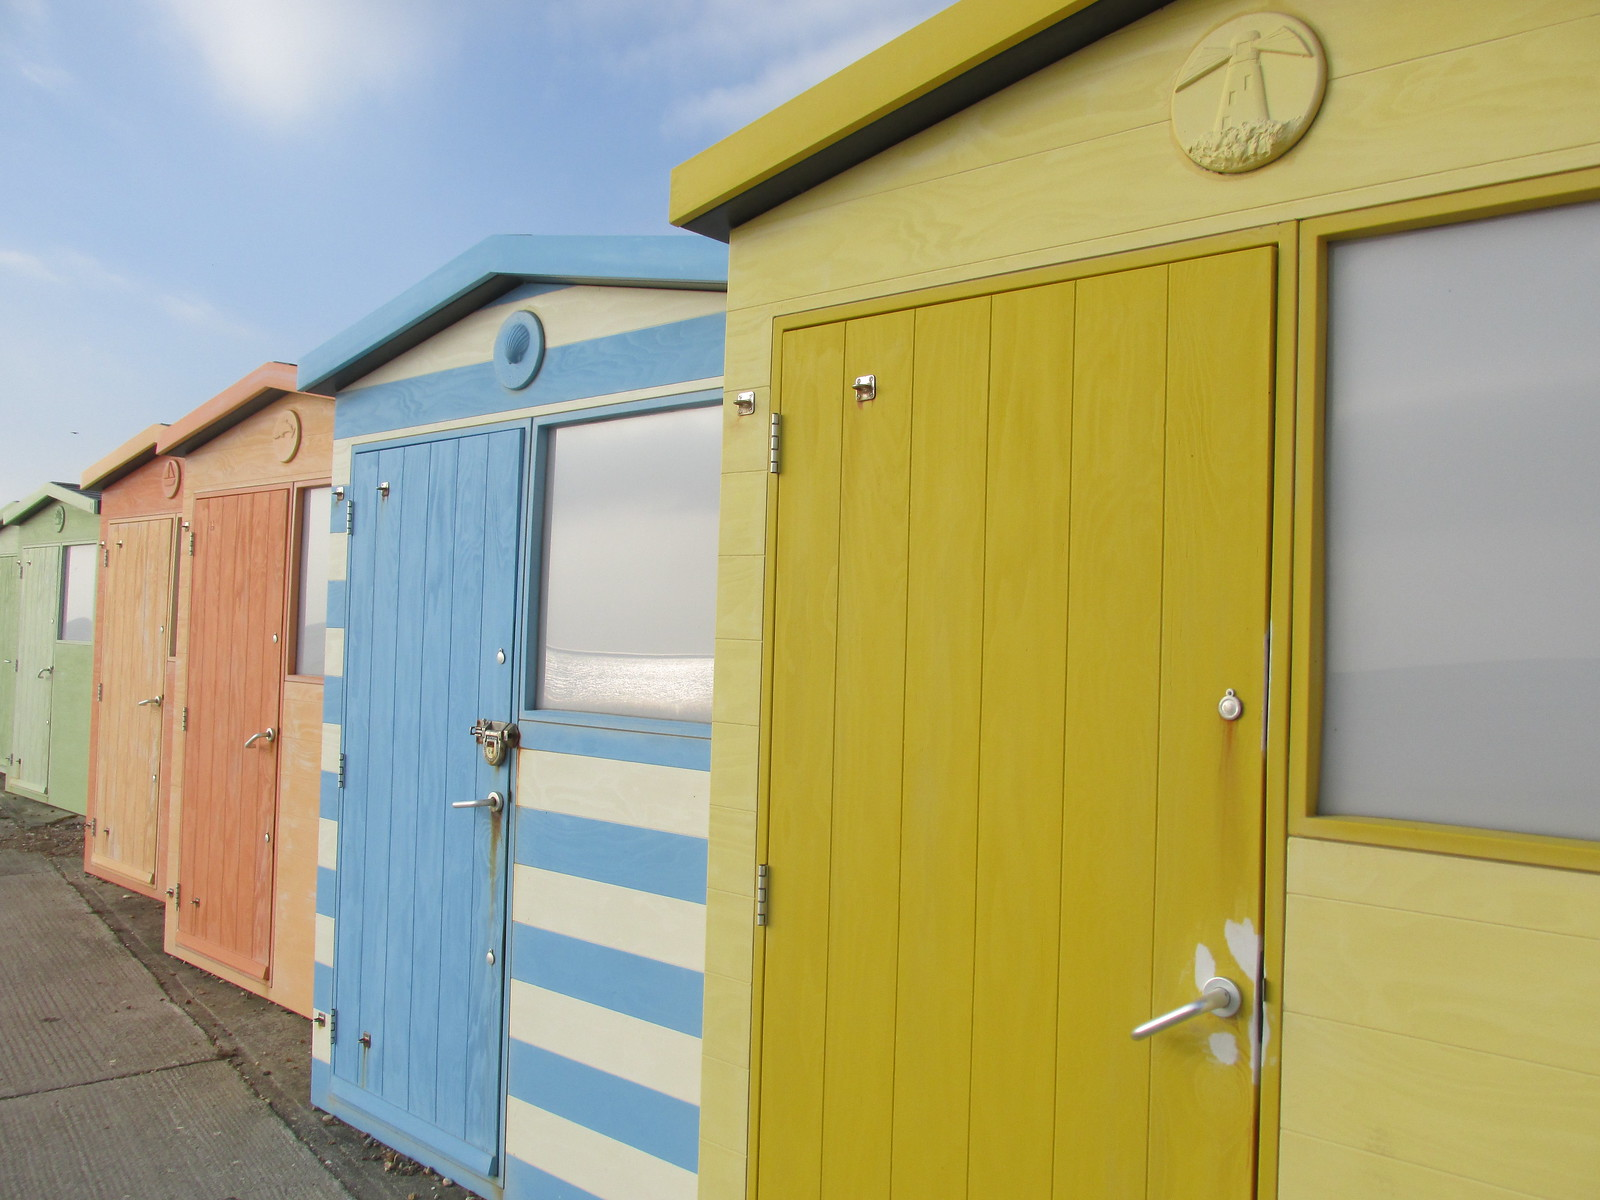 April 6, 2015: Glynde to Seaford Seaford beach huts